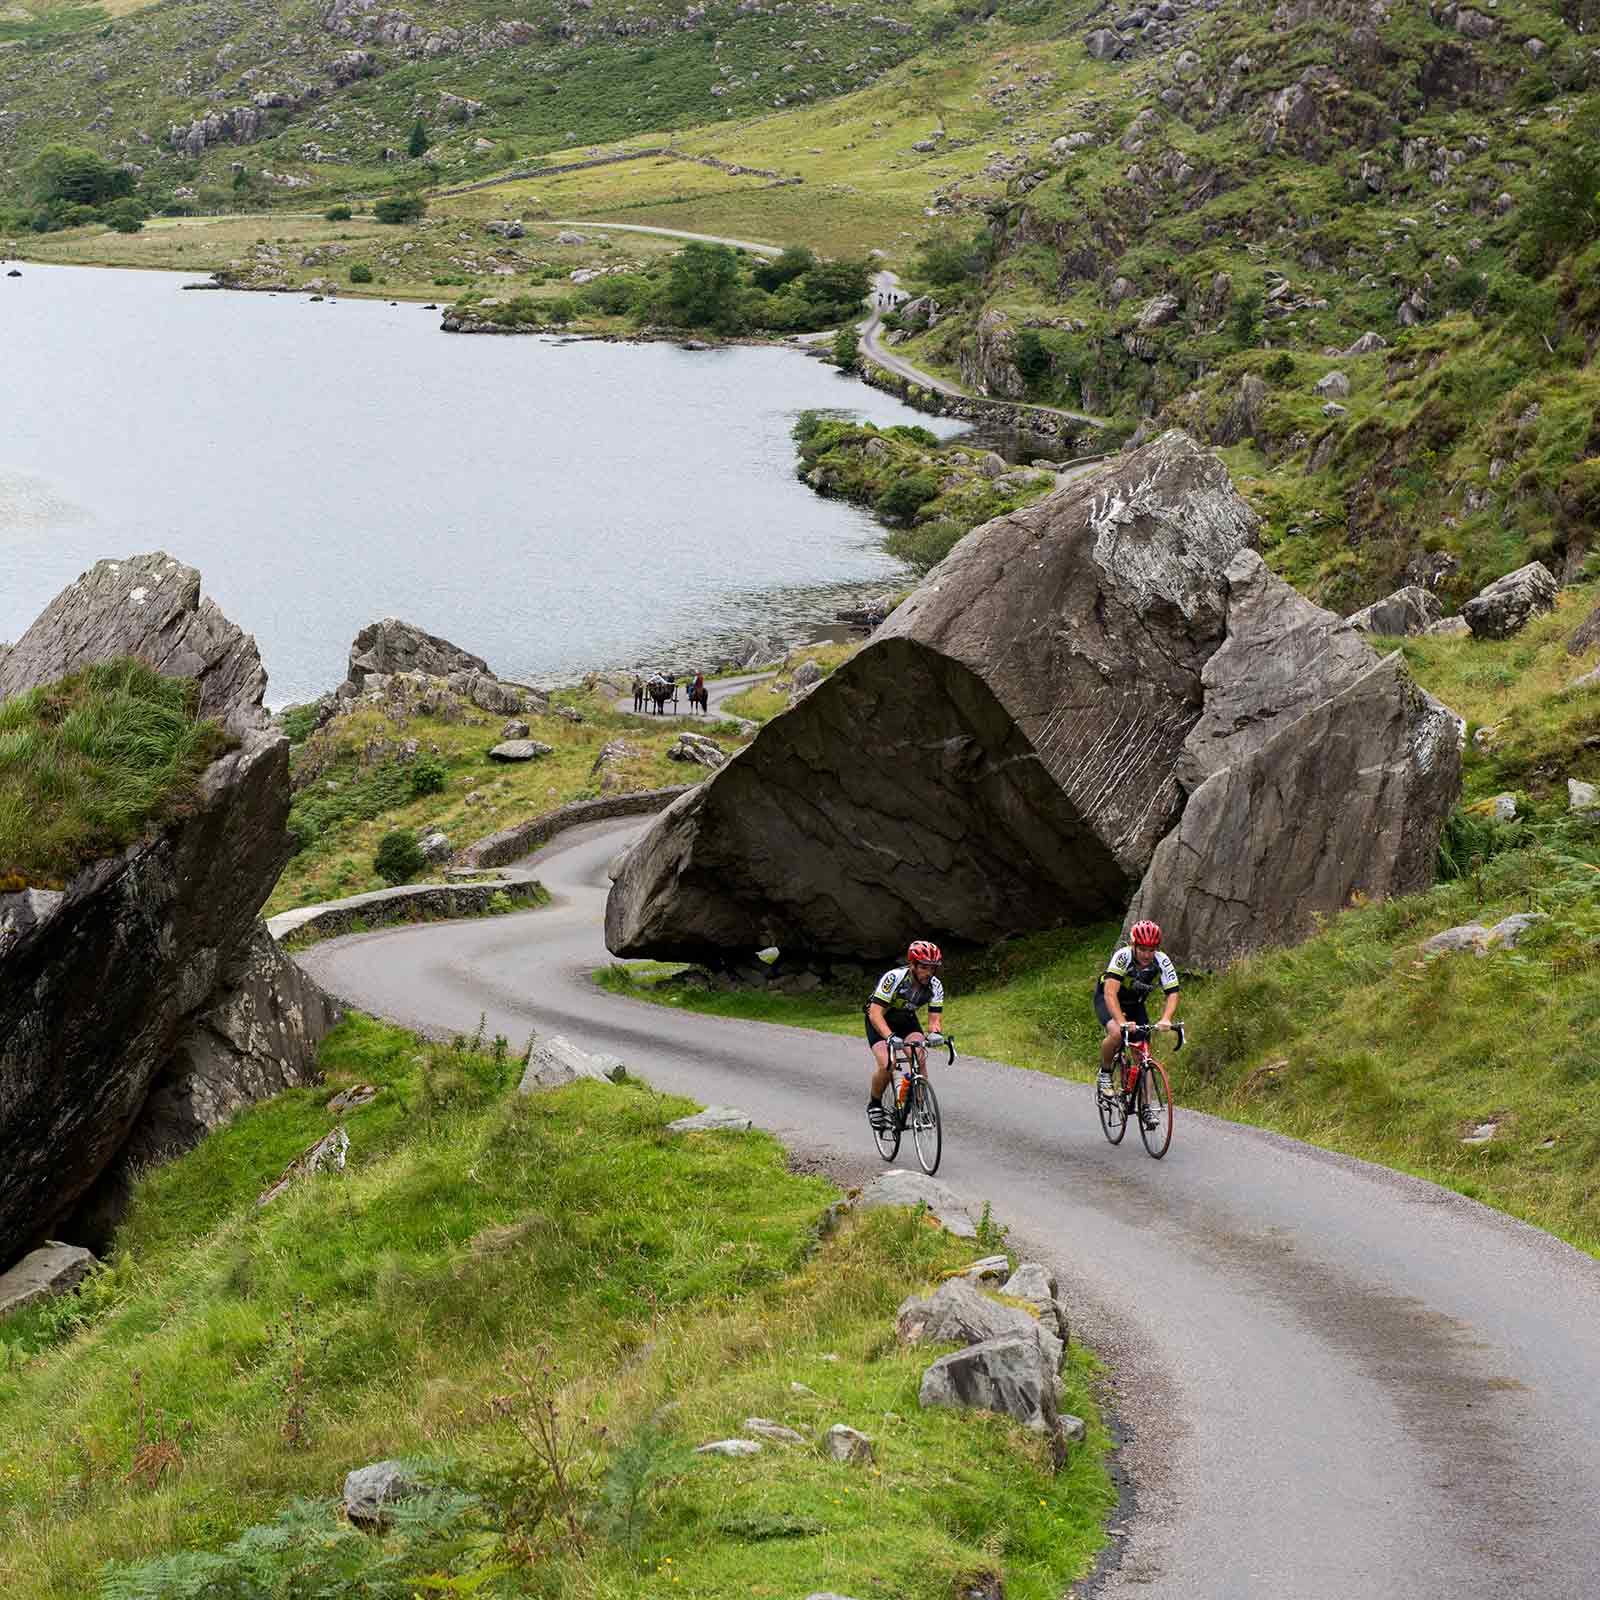 Cyclists on the Ring of Kerry at Molls gap